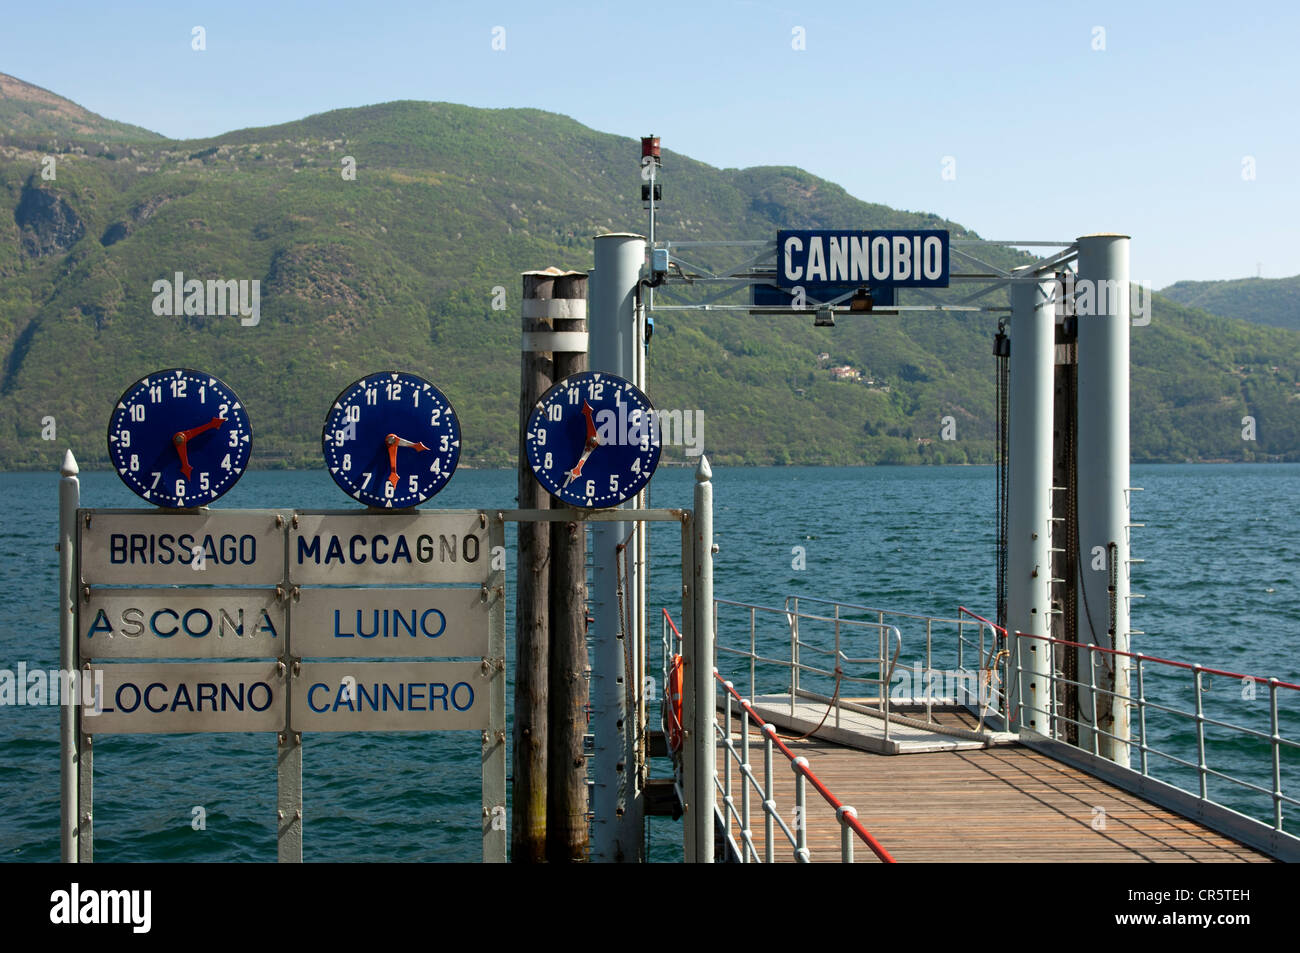 Clocks displaying departure times at the Cannobio jetty on Lake Maggiore, Piedmont, Italy, Europe - Stock Image